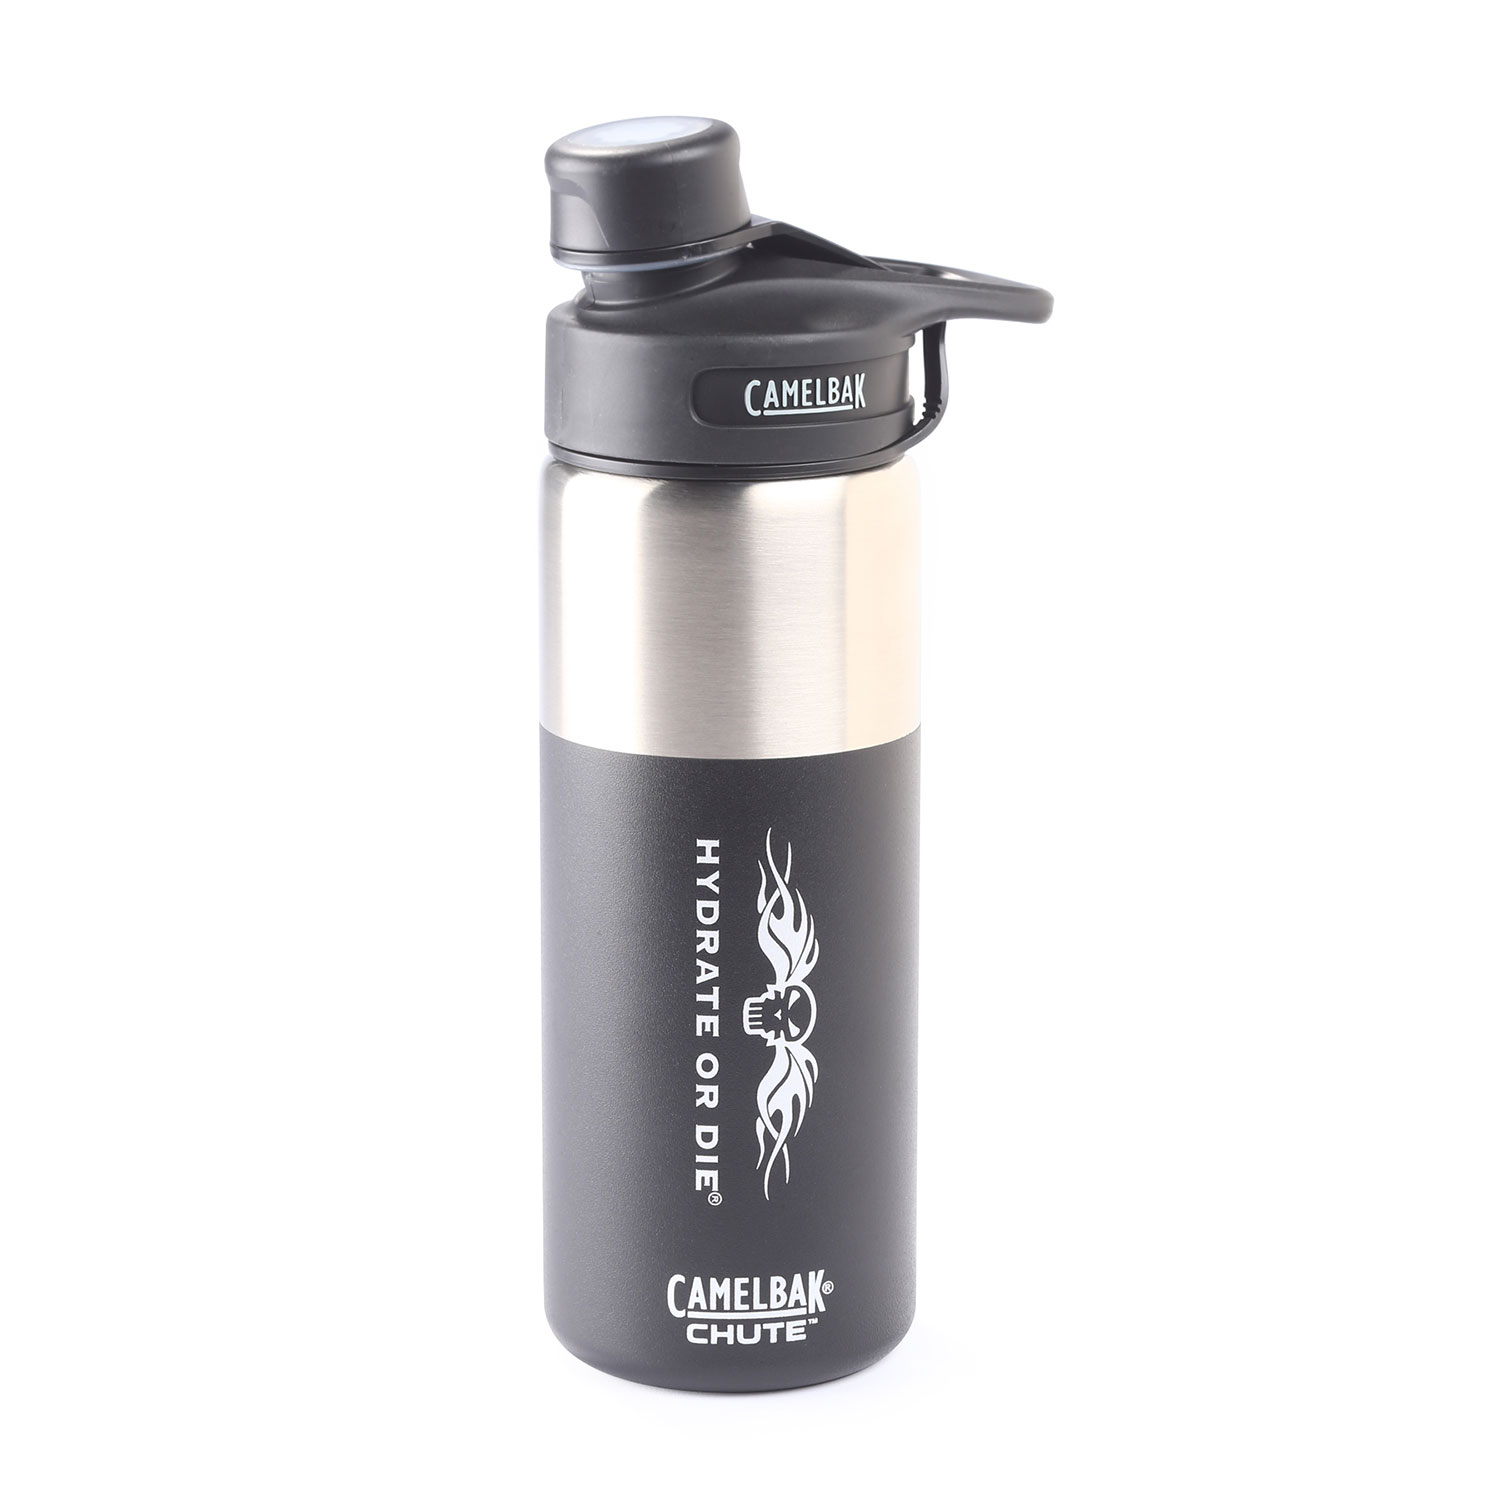 Camelbak Chute Insulated Bottle